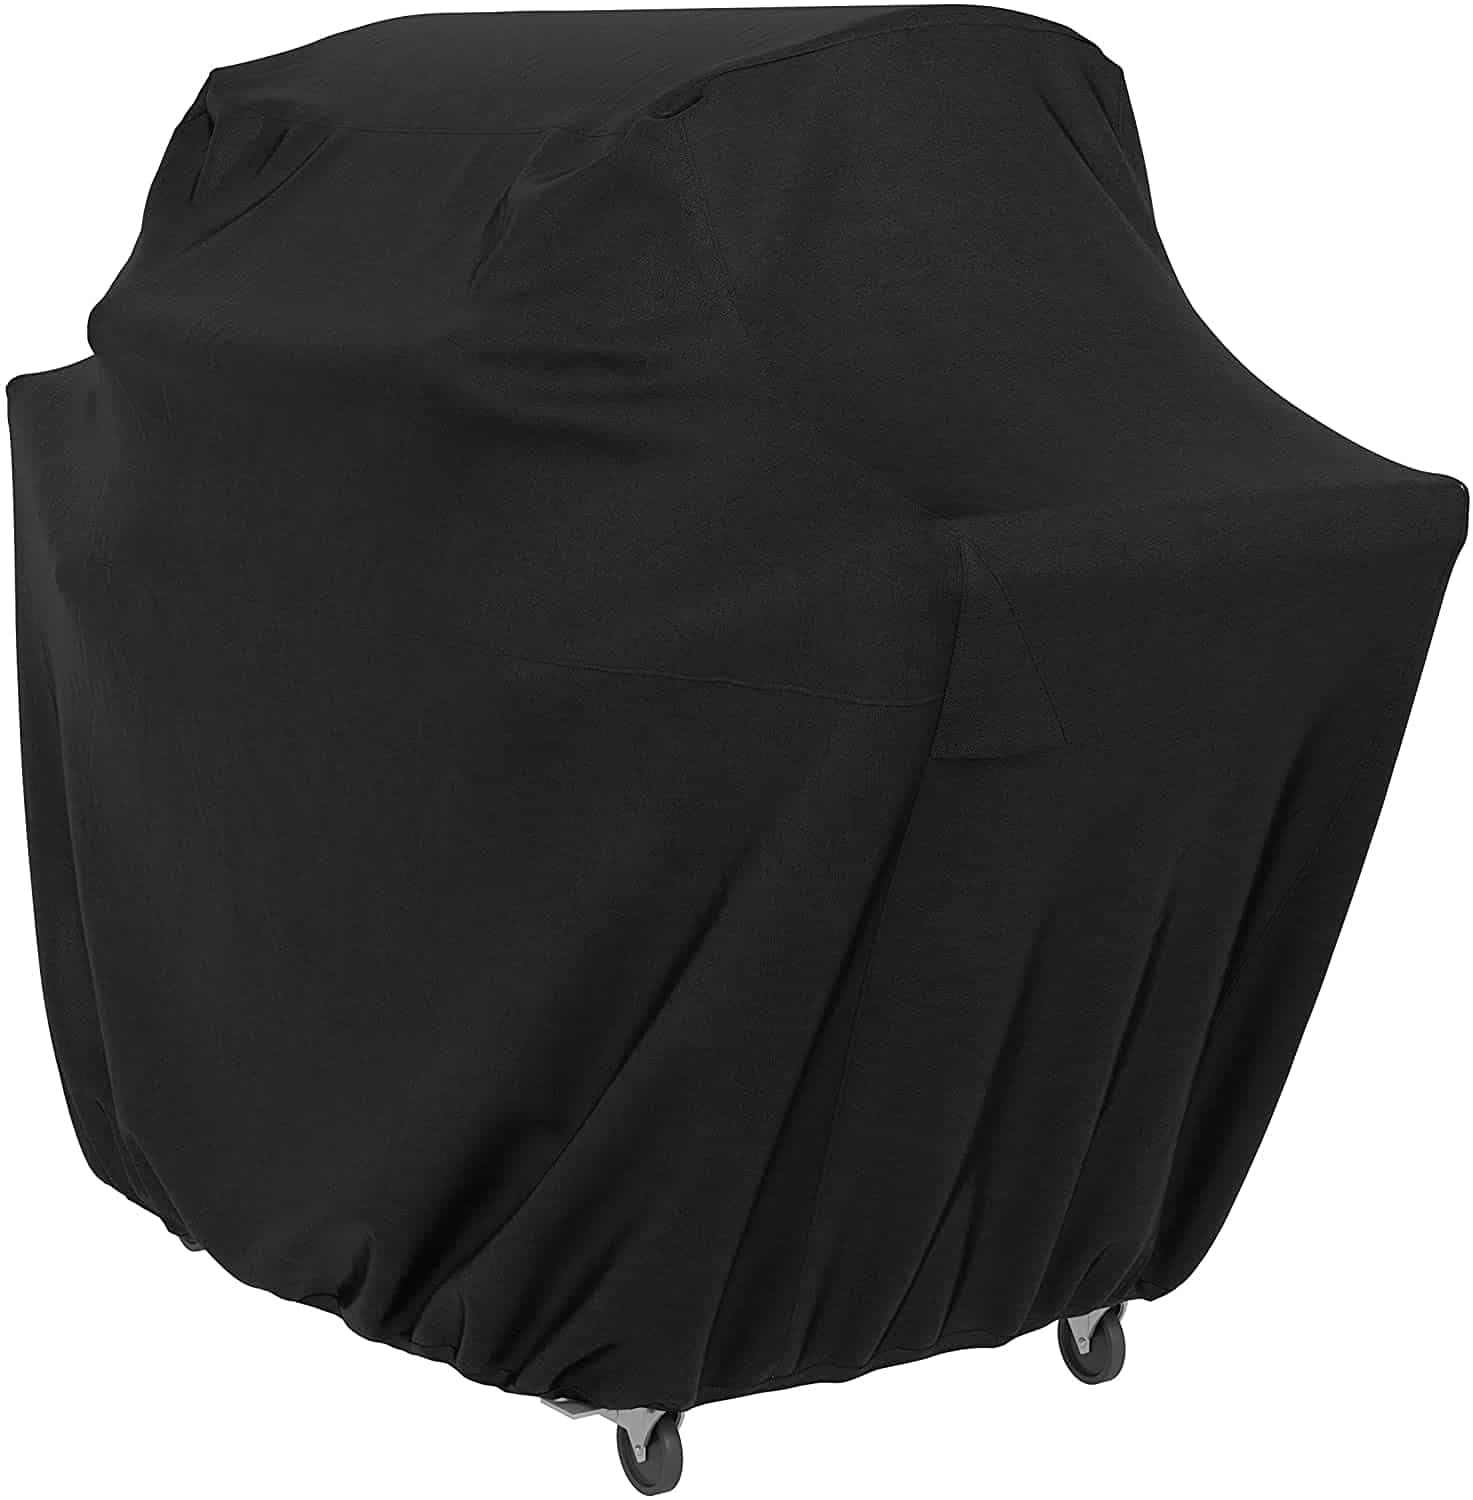 The best grill cover with bungee cords- Amazonbasics Gas